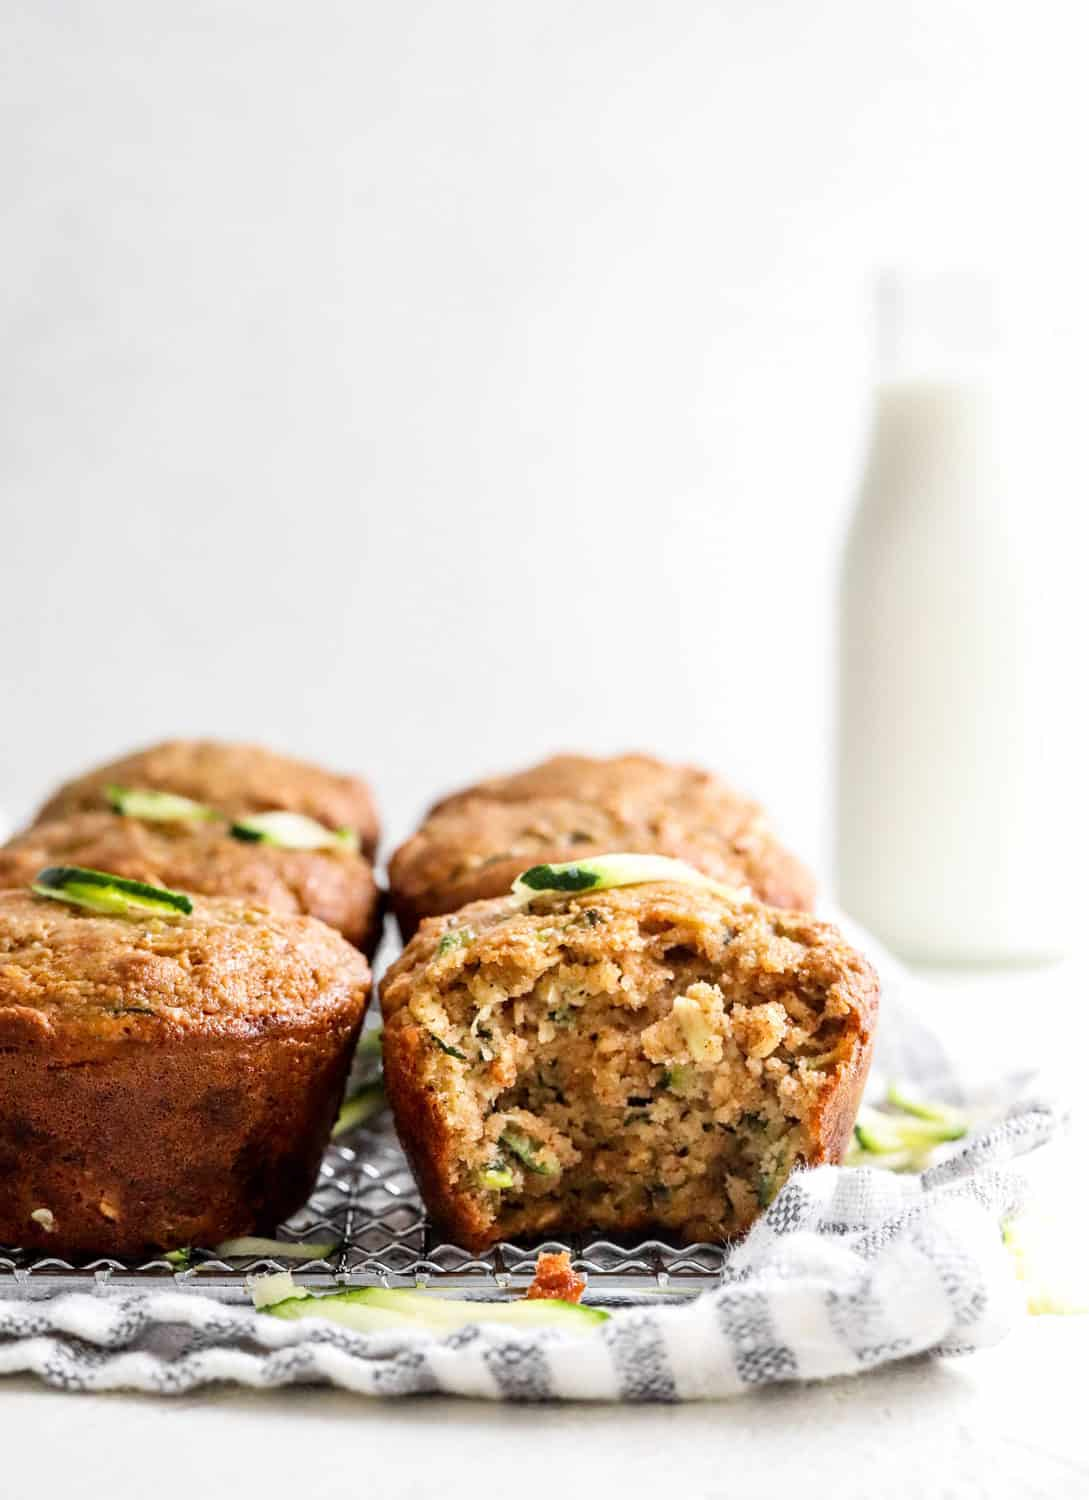 Two rows of healthy zucchini muffins with a bite taken out of one on a wire rack with a striped linen under it with a bottle of milk behind the muffins.